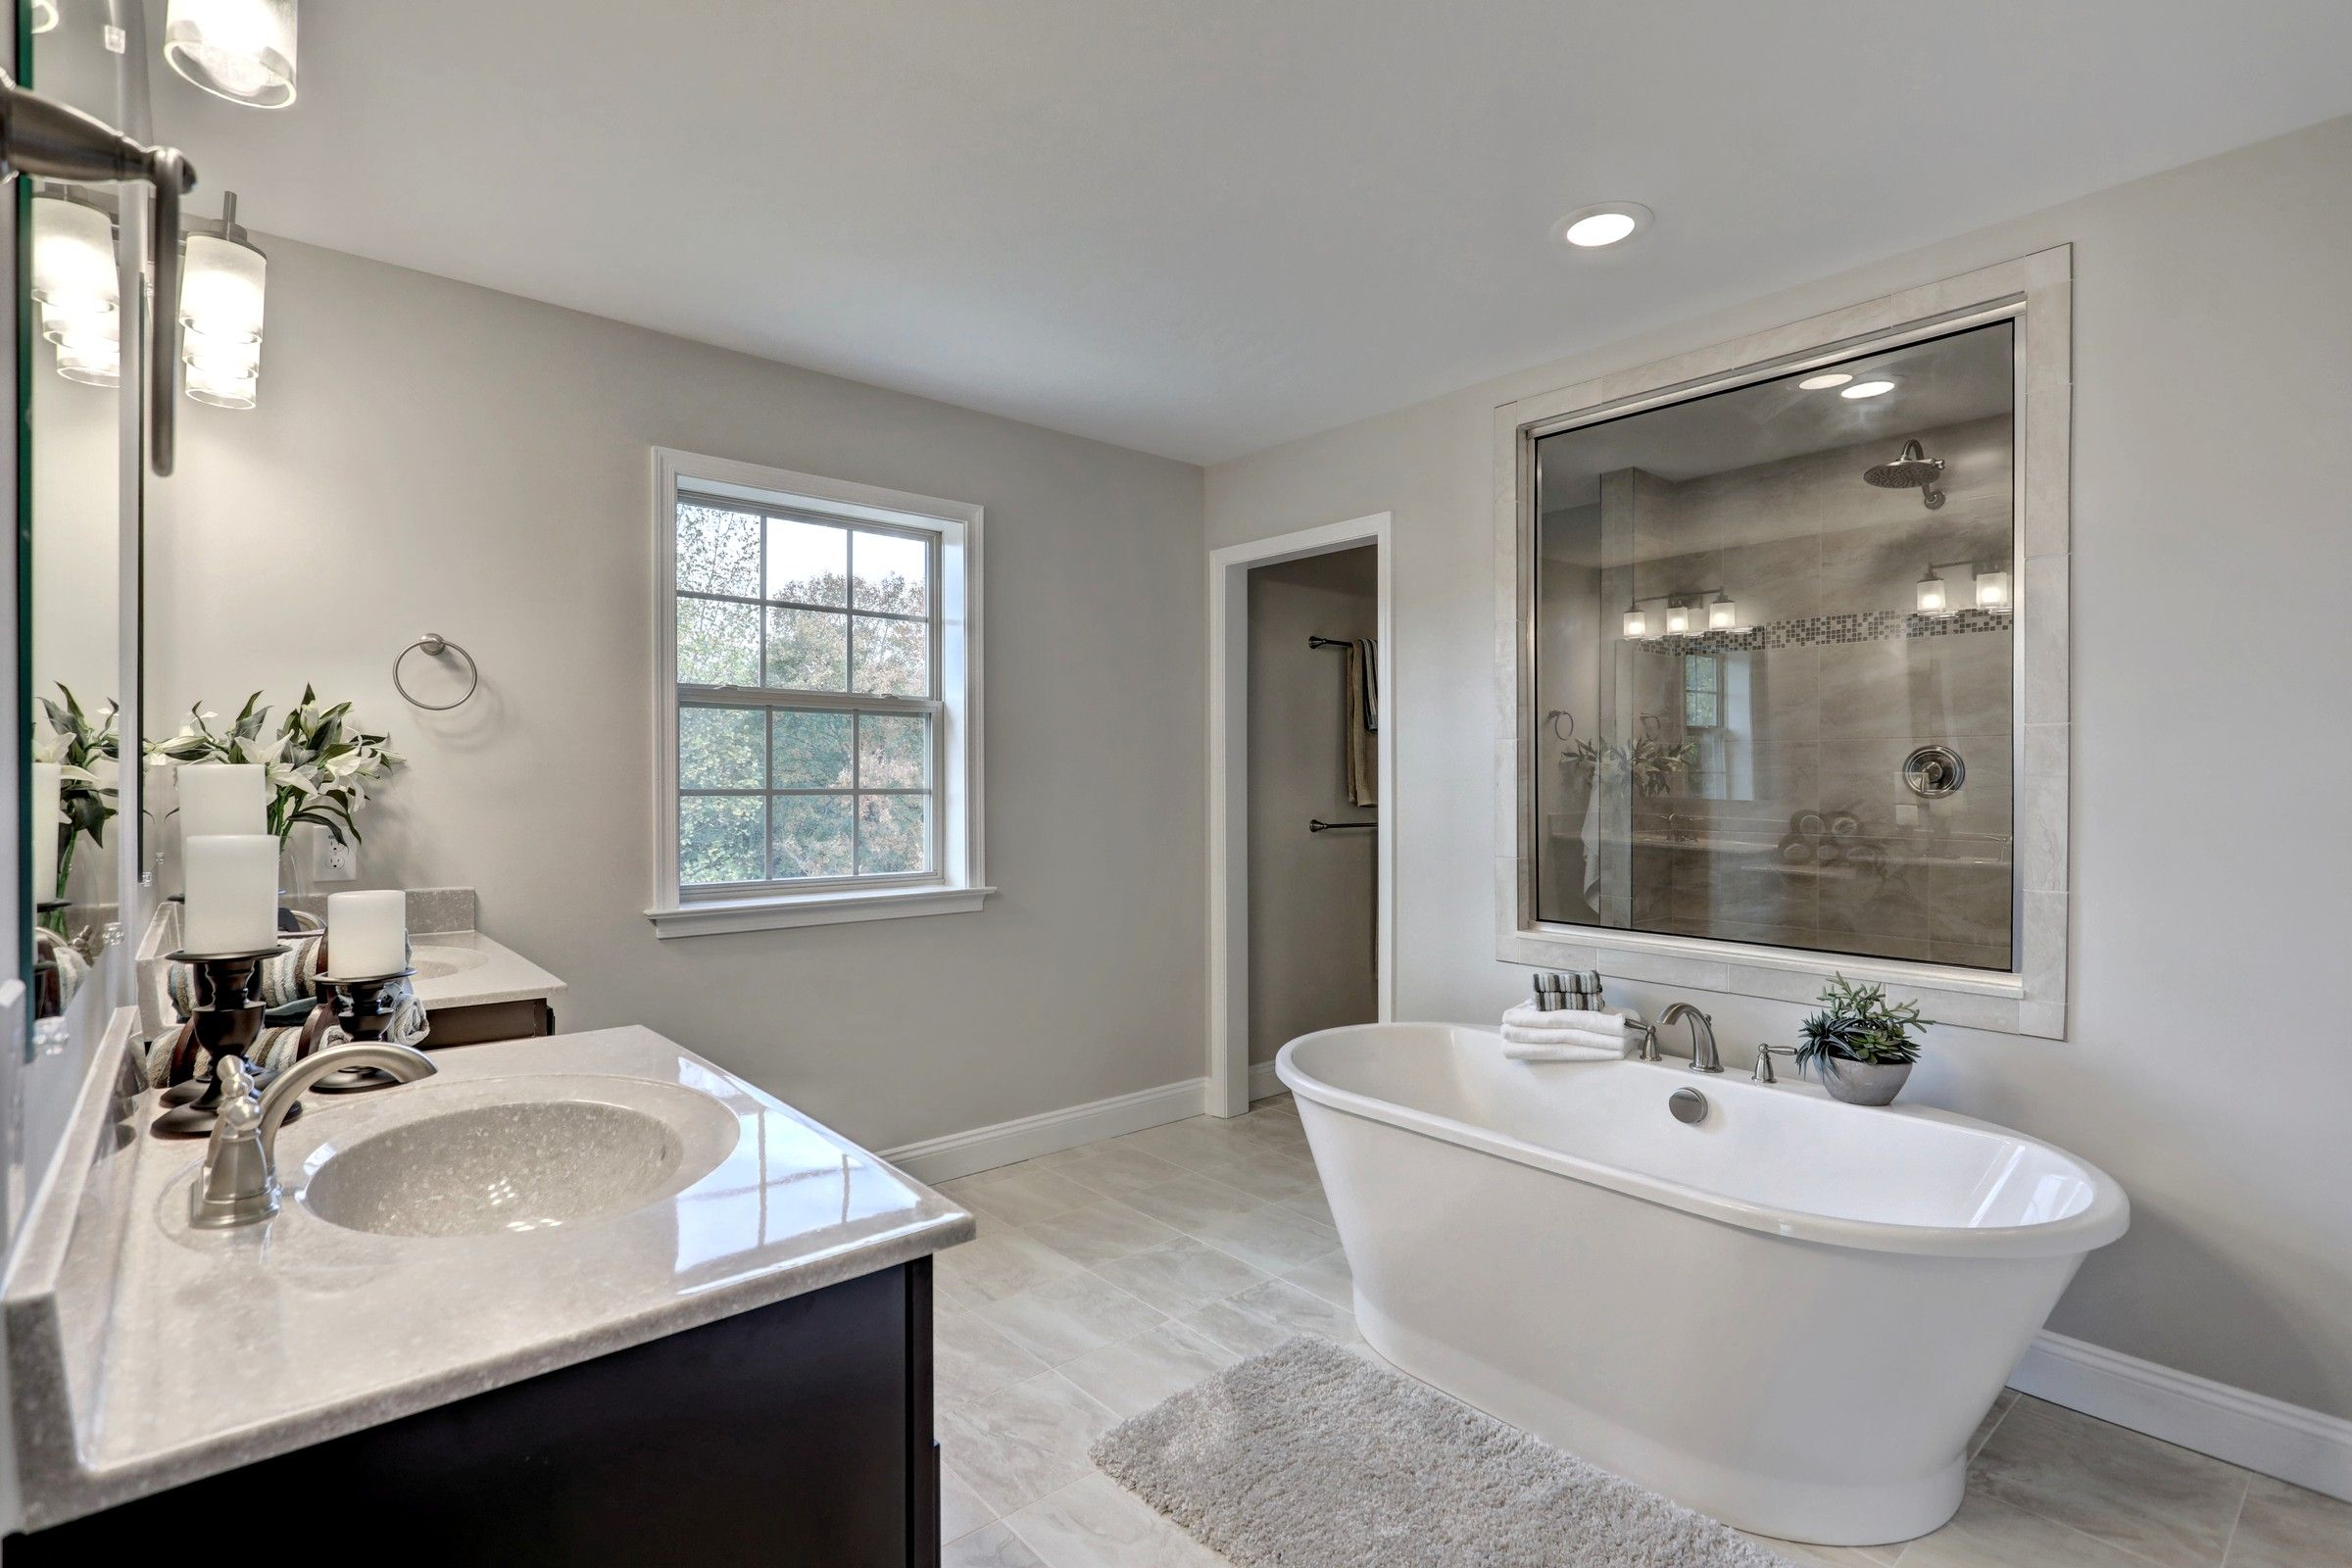 Bathroom featured in the Covington Traditional By Keystone Custom Homes in Baltimore, MD